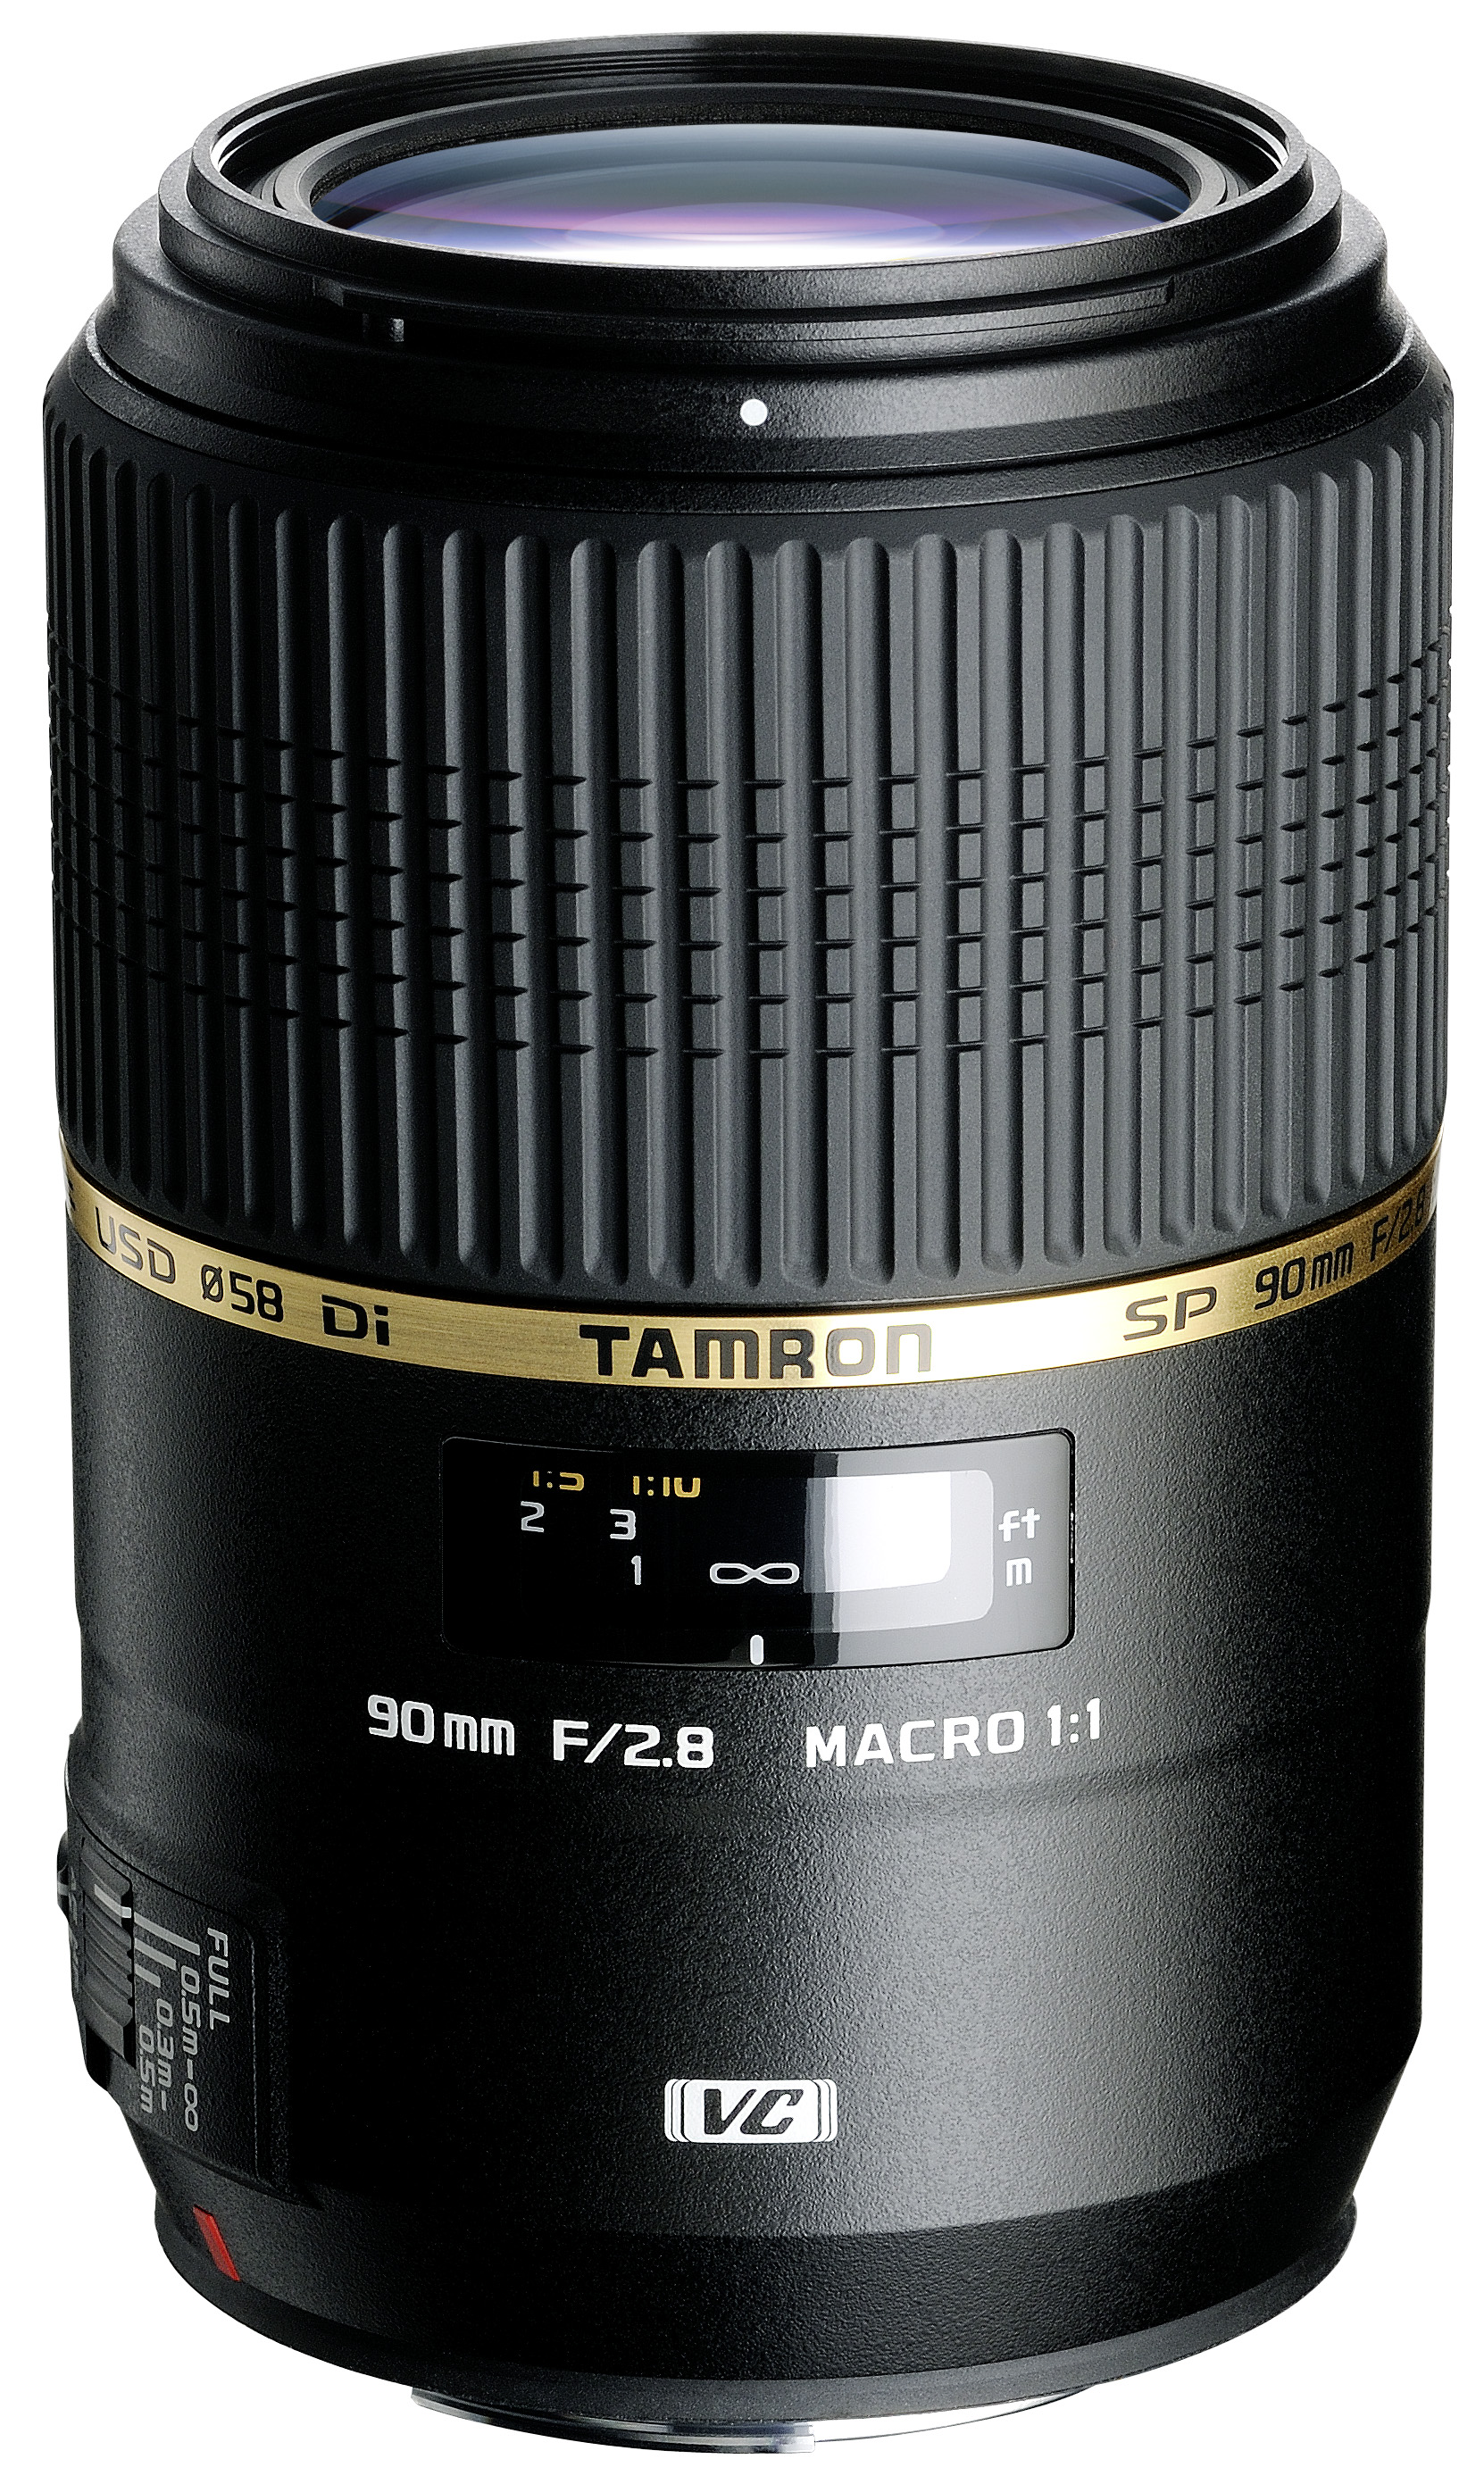 Image of Tamron SP 90MM f/2.8 Di VC USD 1:1 Macro Lens For Canon Mount